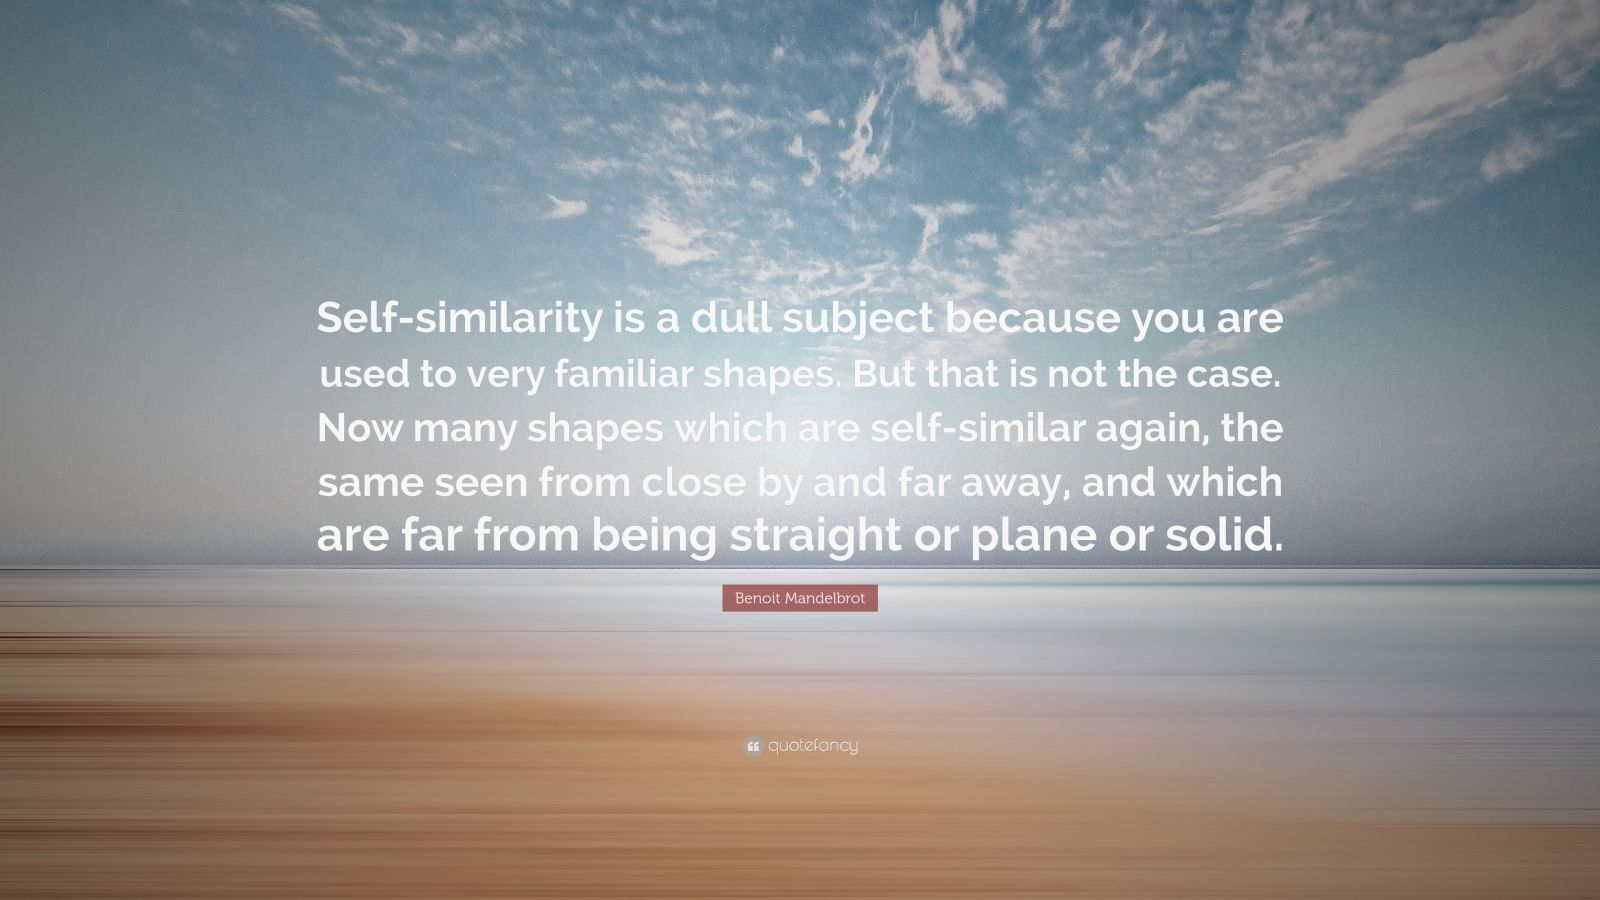 """Benoit Mandelbrot Quote: """"Self-similarity is a dull subject because you are used to very familiar shapes. But that is not the case. Now many shapes which are self-similar again, the same seen from close by and far away, and which are far from being straight or plane or solid."""""""